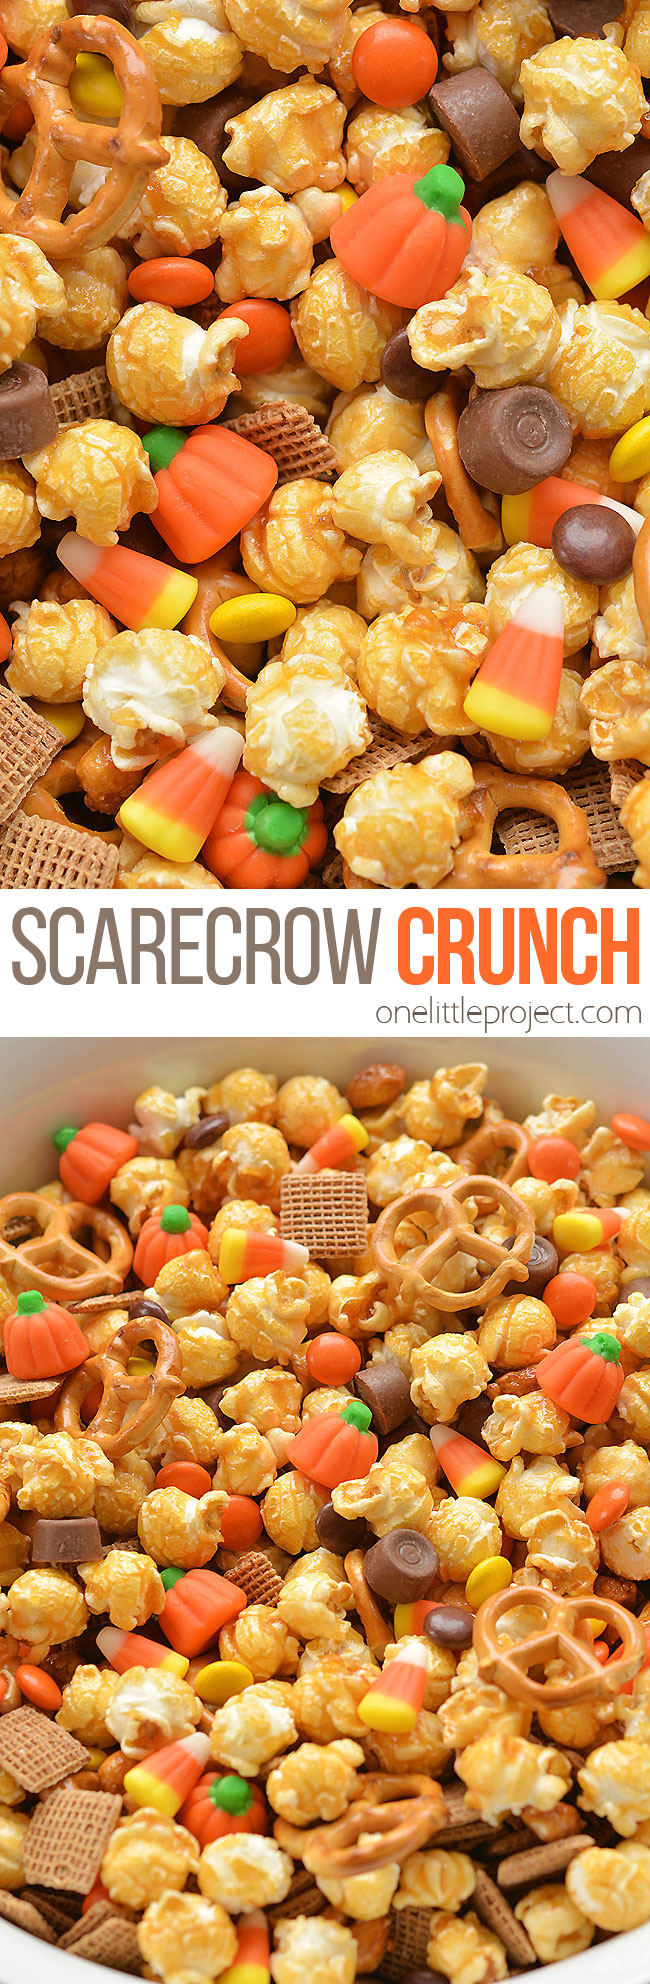 "This scarecrow crunch snack mix is SO EASY to make and tastes so good! This is such an awesome kid friendly Halloween snack recipe. It would also make an awesome Thanksgiving treat! Loaded with the perfect mix of salty and sweet treats, this ""boo-tiful"" blend is exactly what you need to celebrate the spookiest night of the year! Or just fall and autumn in general!"